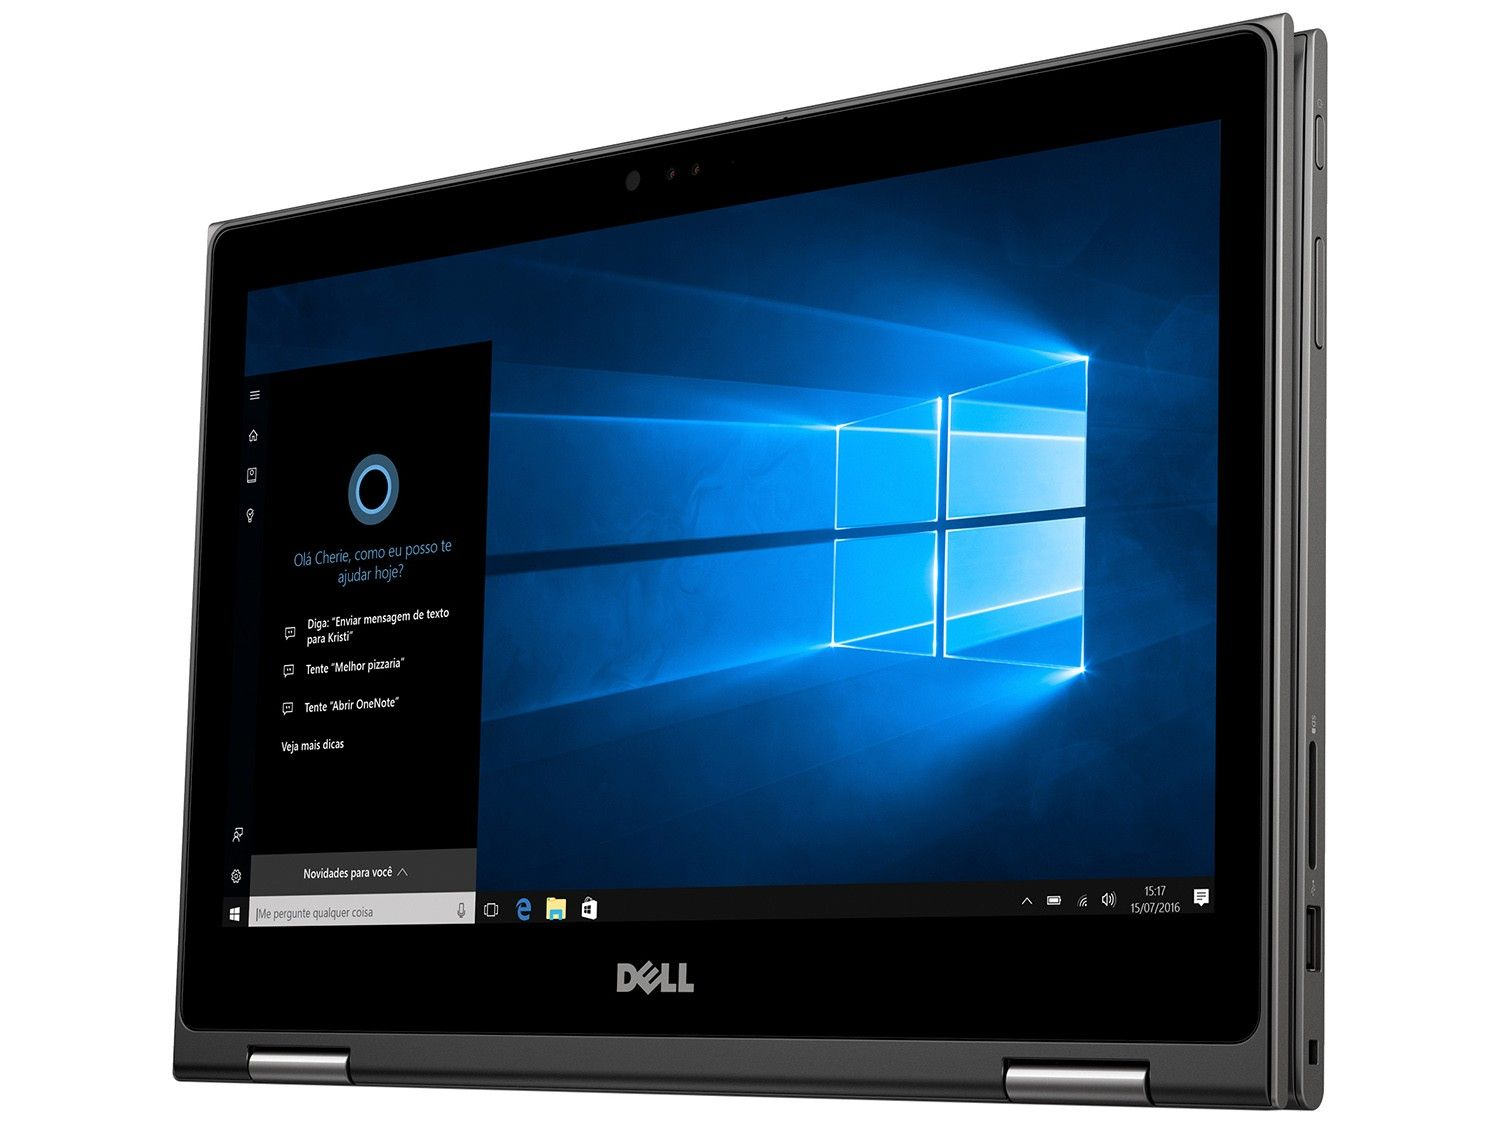 Nb Dell Inspiron 5378 2-1 Core I5-7200U 3.1Ghz|1Tb|8Gb|13|Touch|Win10Pro